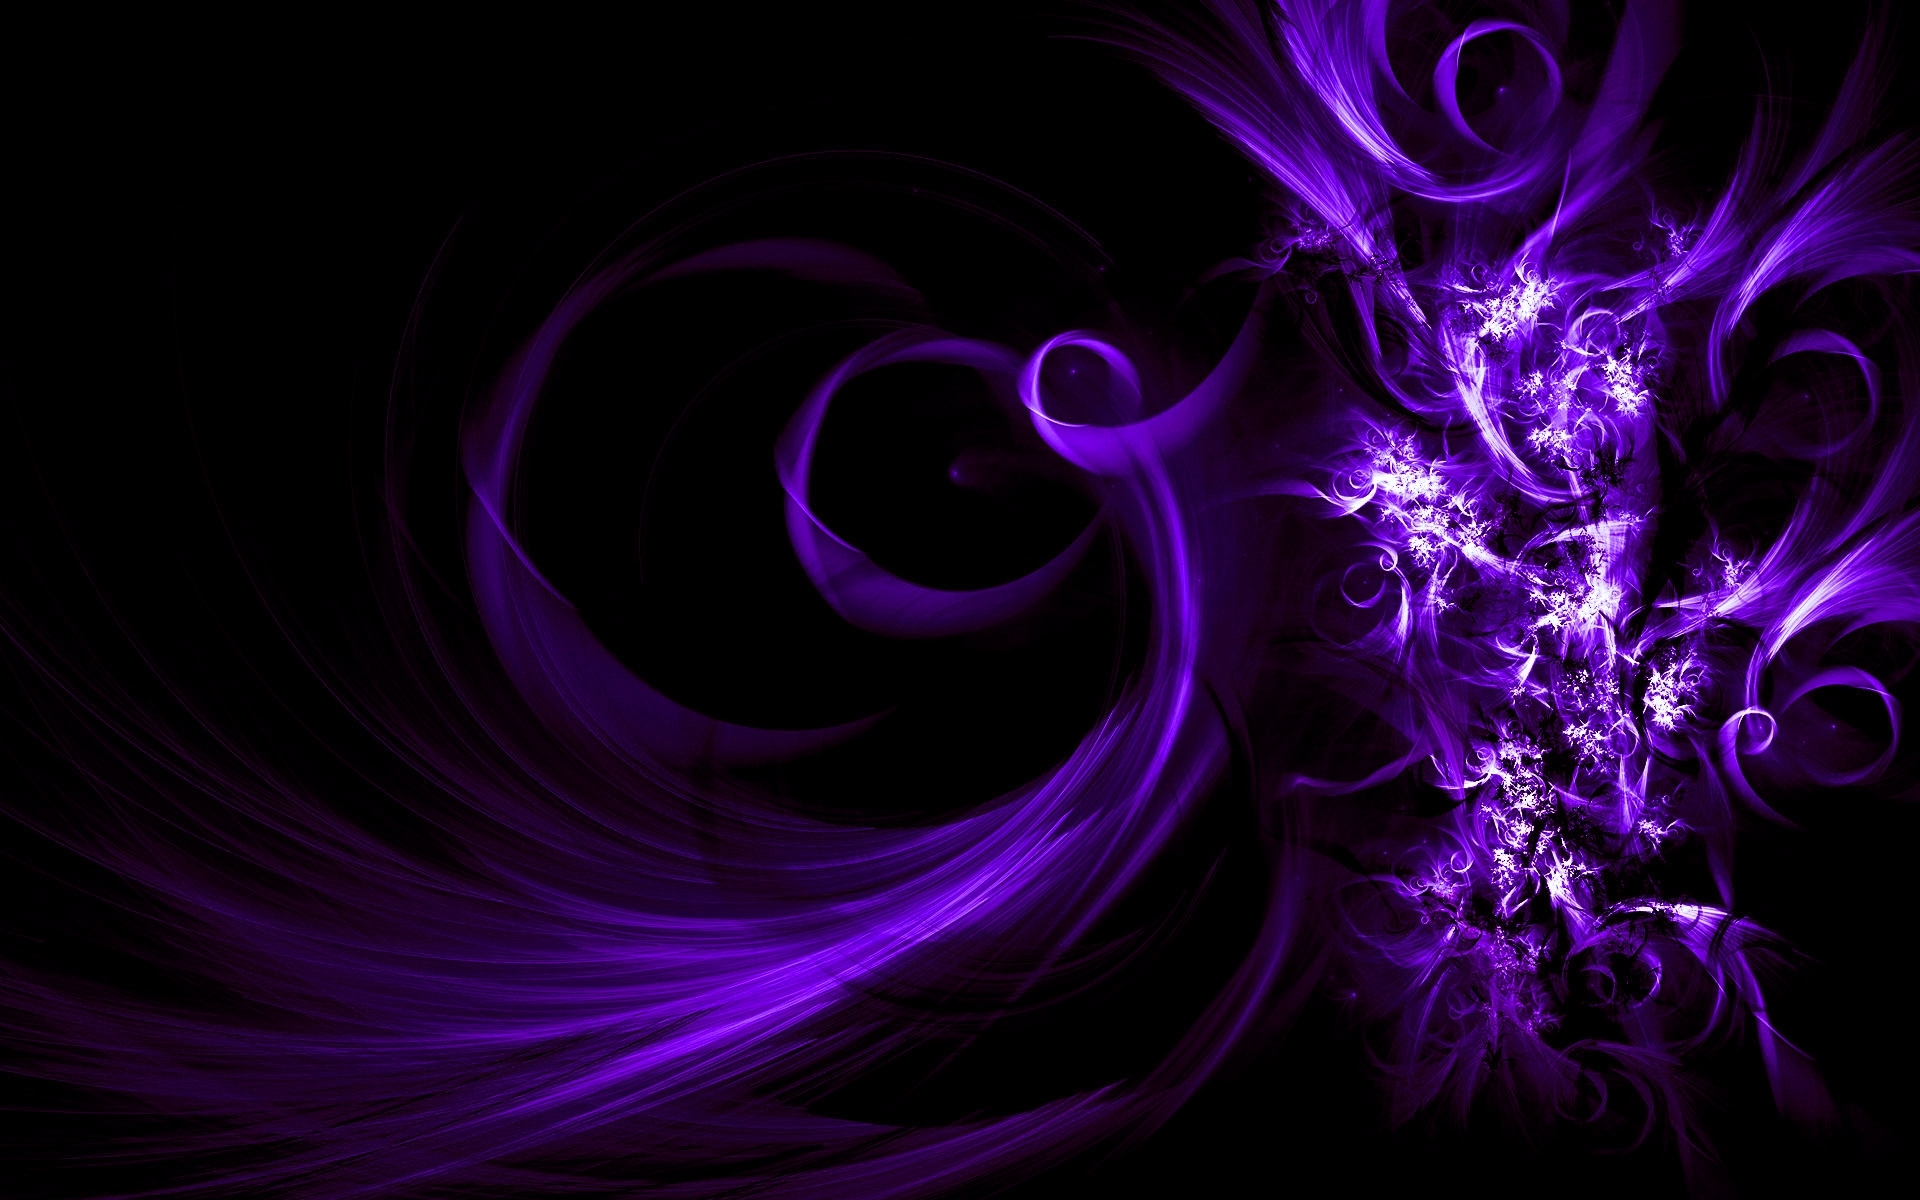 purple abstract 1080